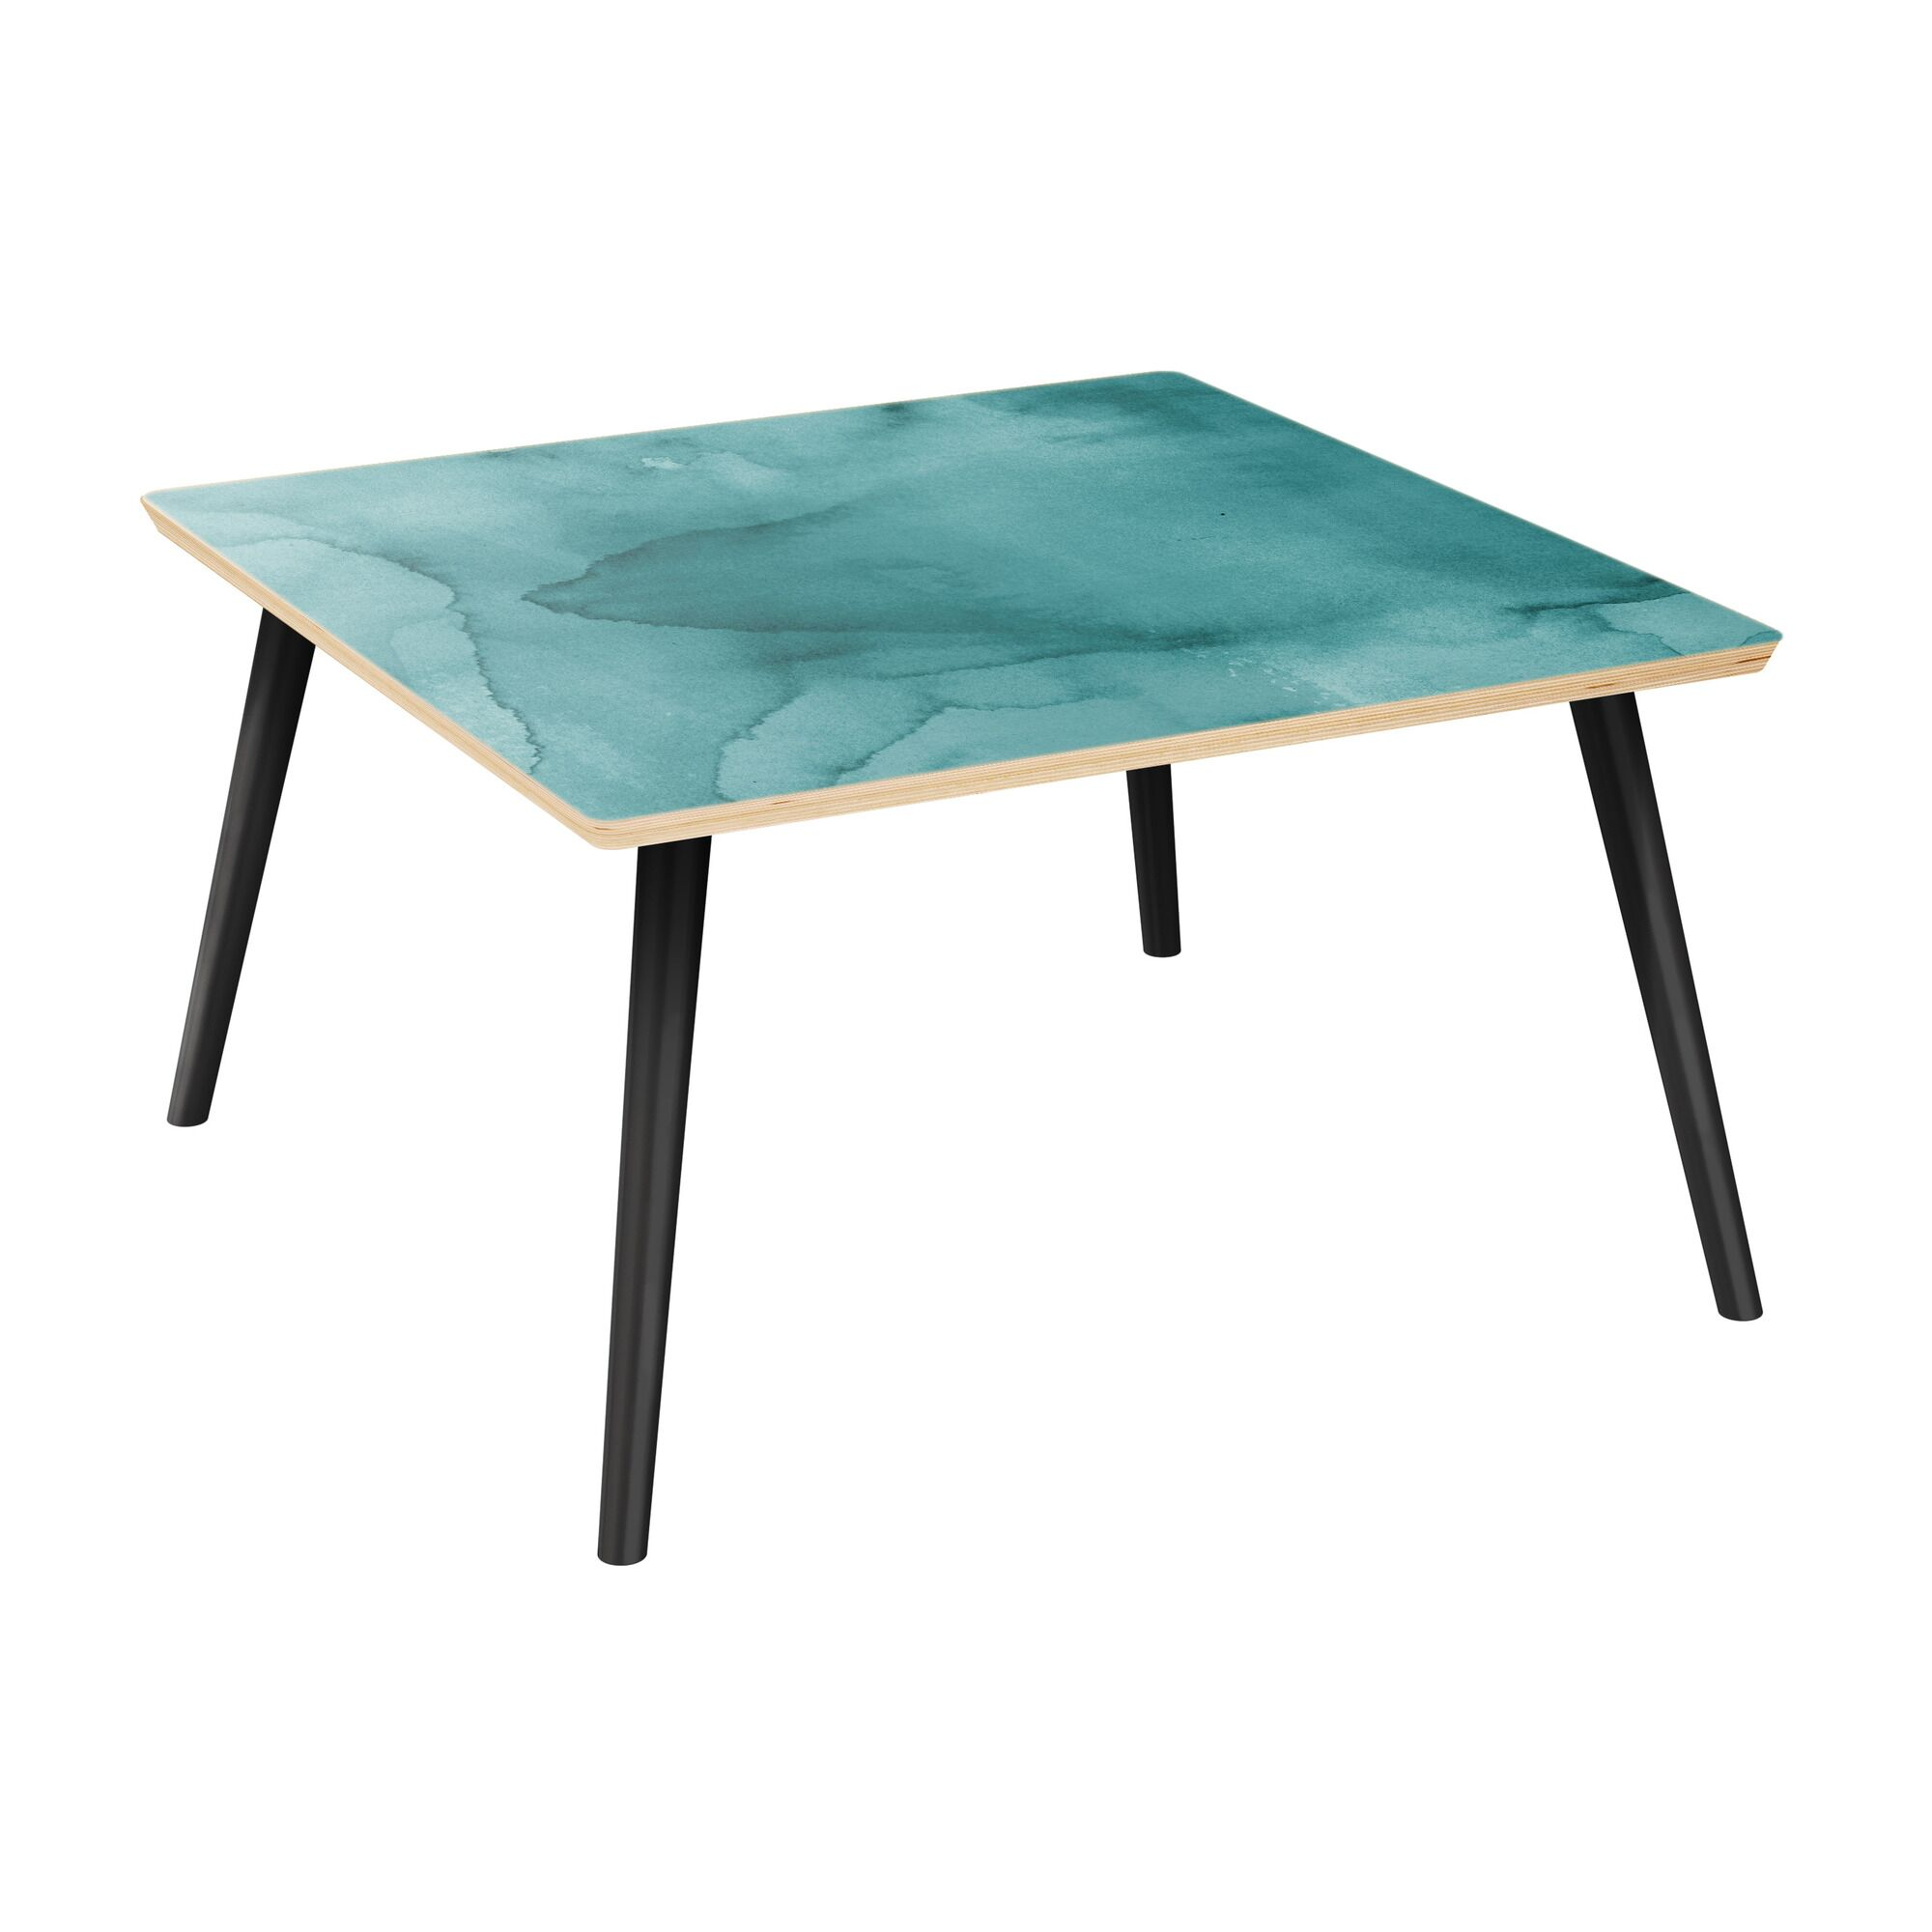 Jeffry Coffee Table Table Top Boarder Color: Natural, Table Base Color: Black, Table Top Color: Turquoise